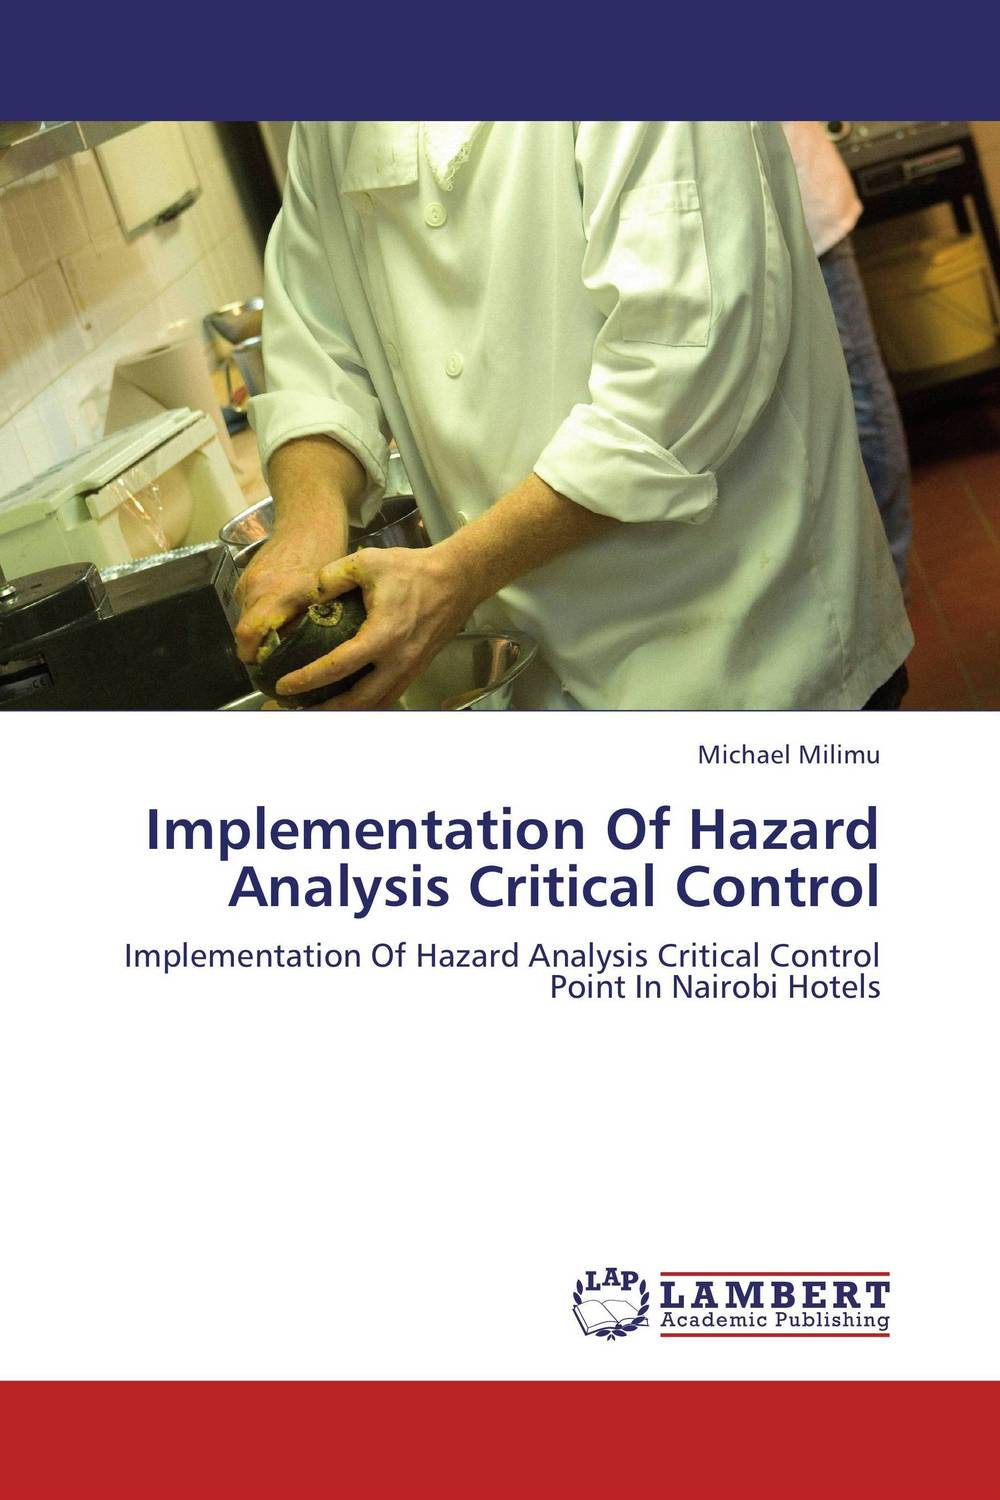 Implementation Of Hazard Analysis Critical Control michael milimu implementation of hazard analysis critical control